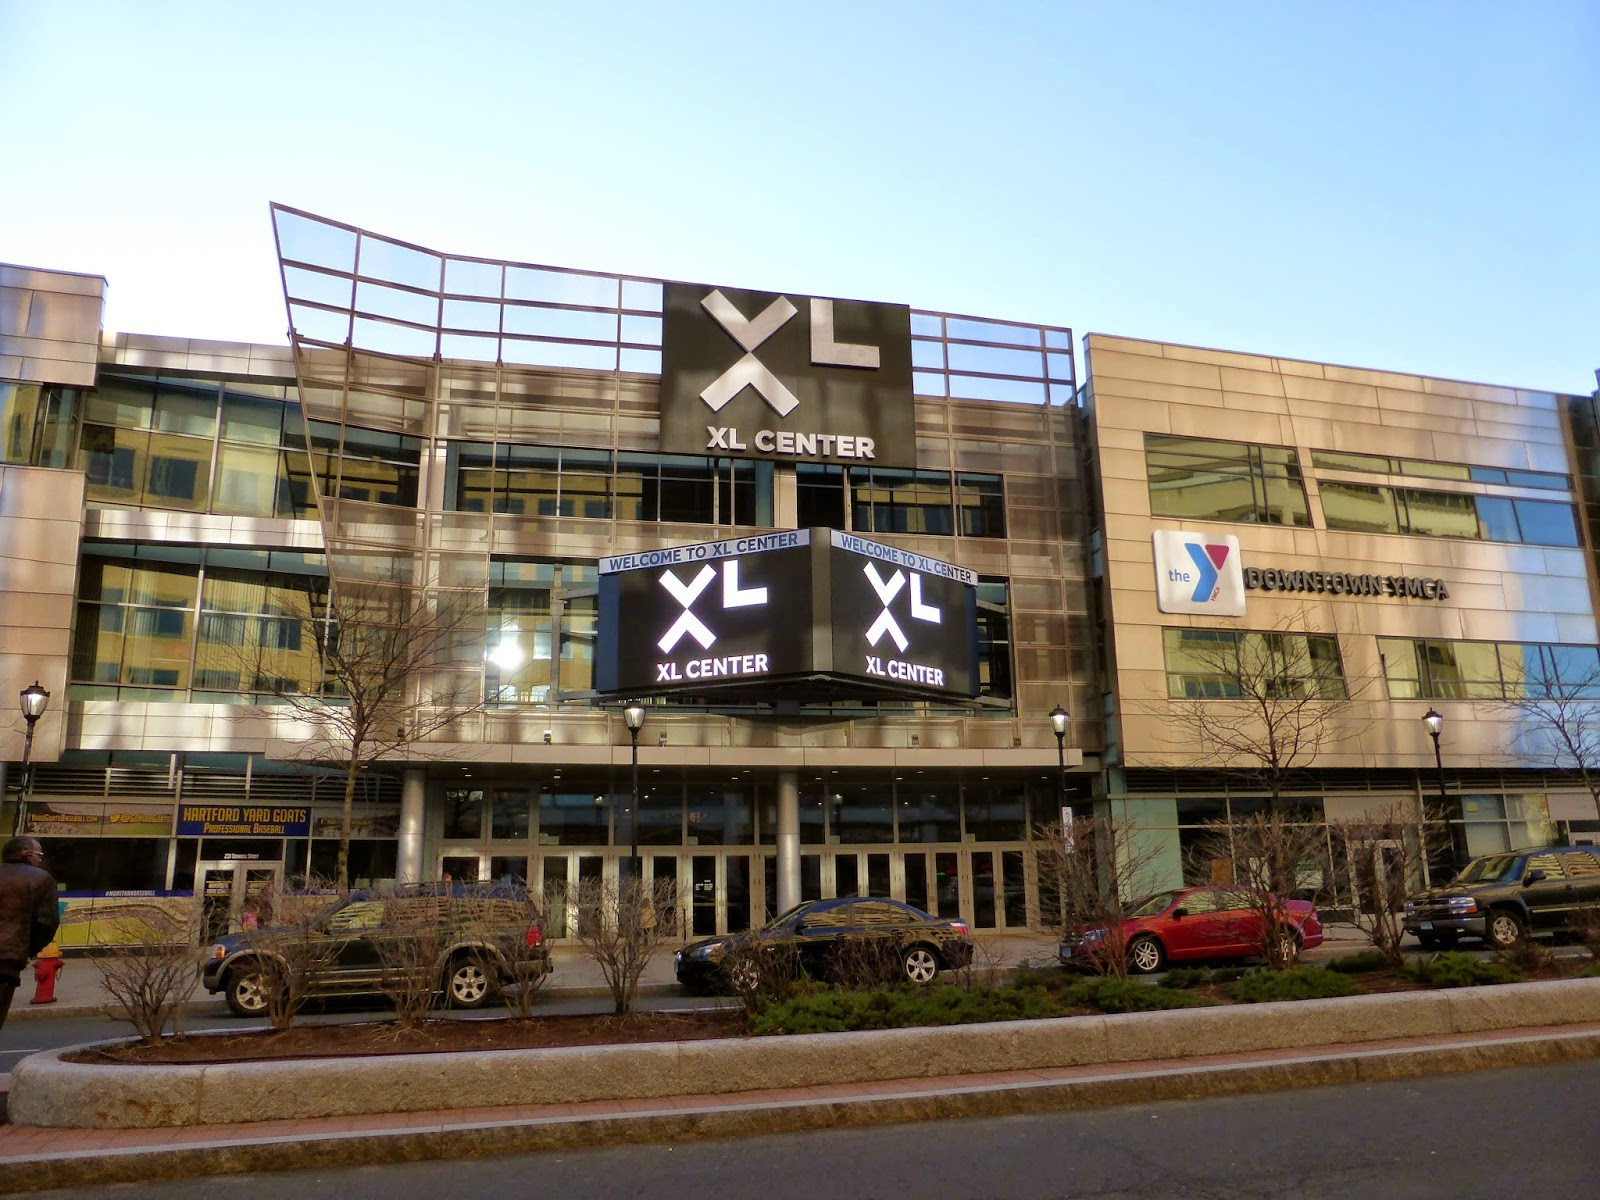 Xl center renovation updates hartford wolf pack - The Team Plays In The Xl Center Which Used To Be Known As The Hartford Civic Center Located Right Downtown It Doesn T Look A Pro Sports Venue From The